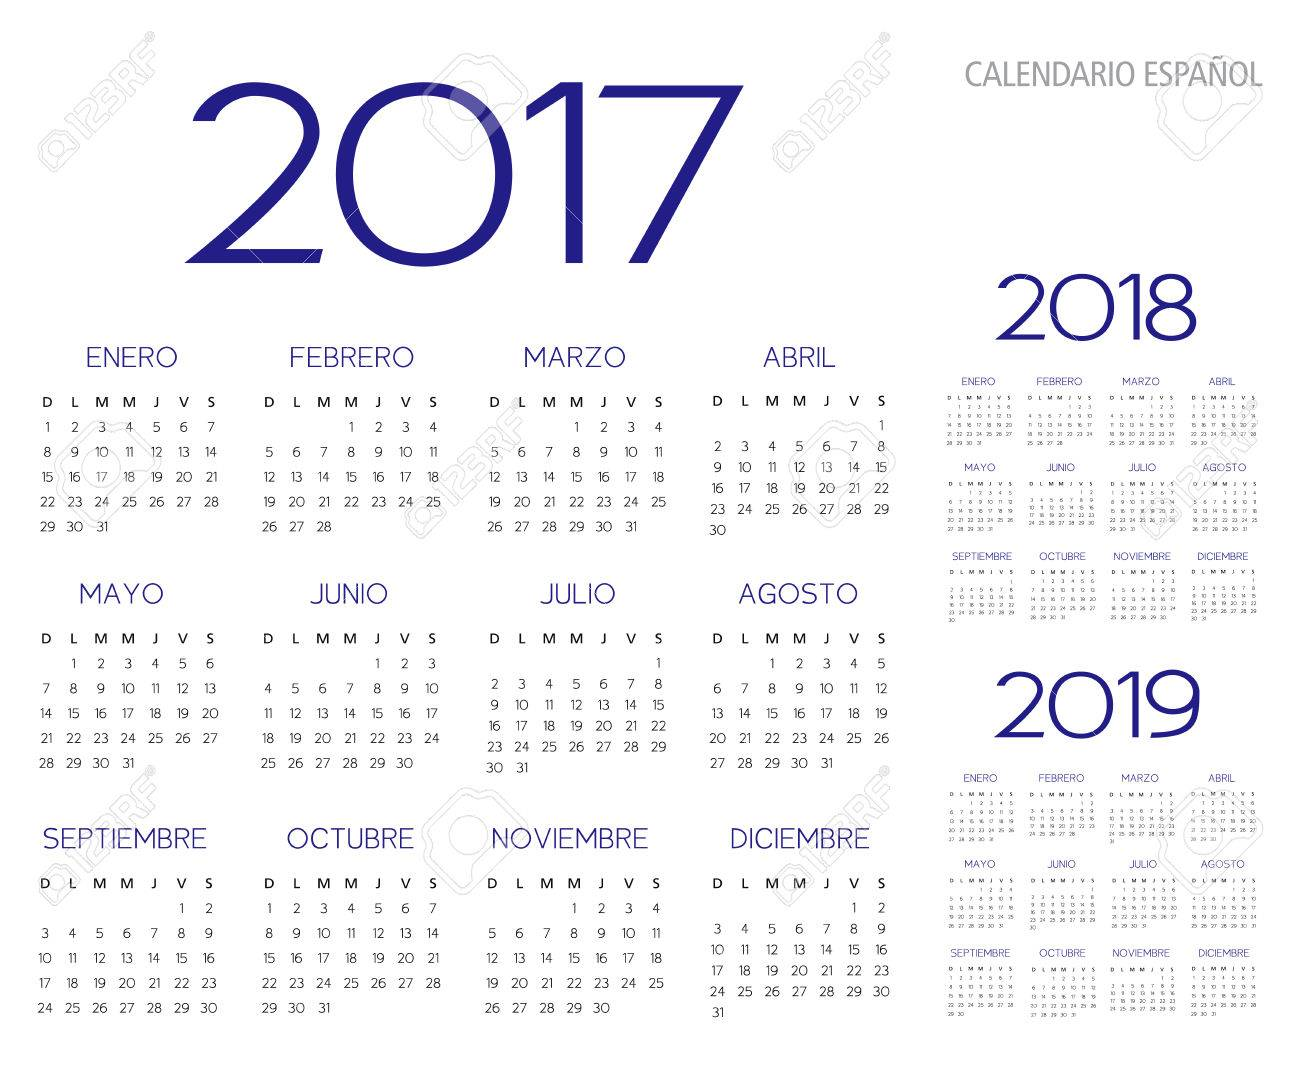 spanish calendar 2017 2018 2019 vector text is outline version 10 stock vector